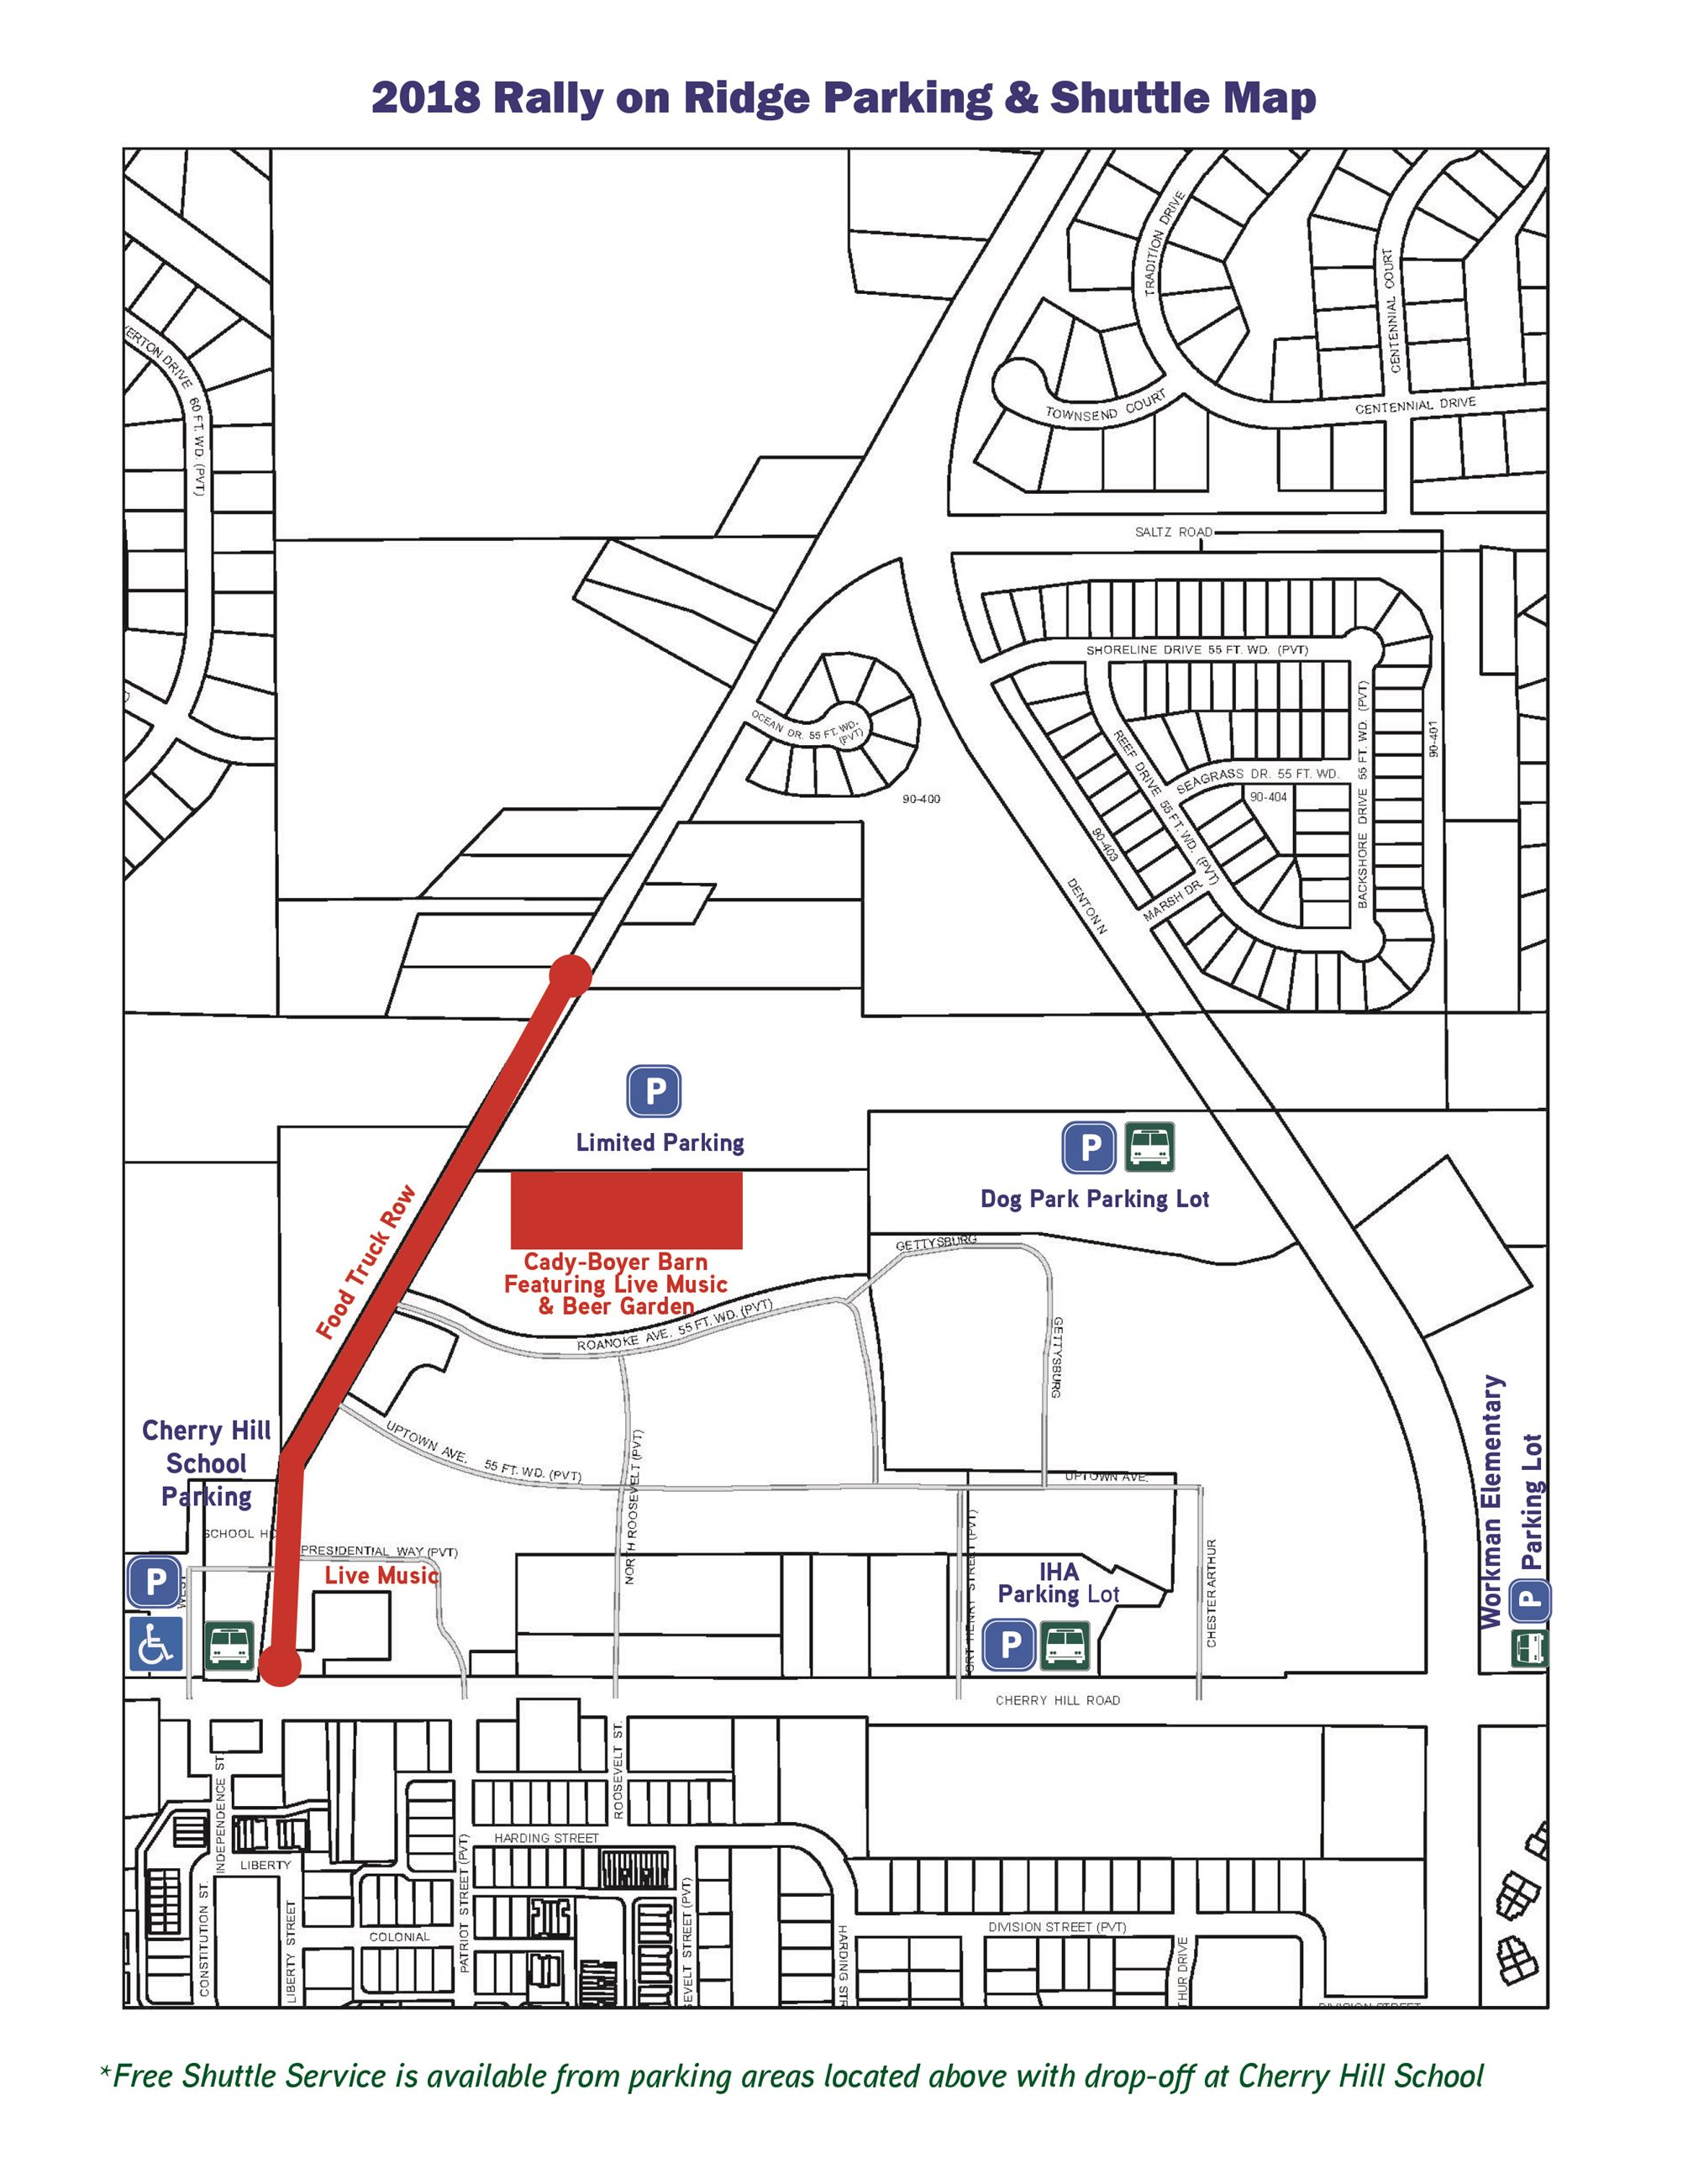 Rally on Ridge Parking and Shuttle Map 2018